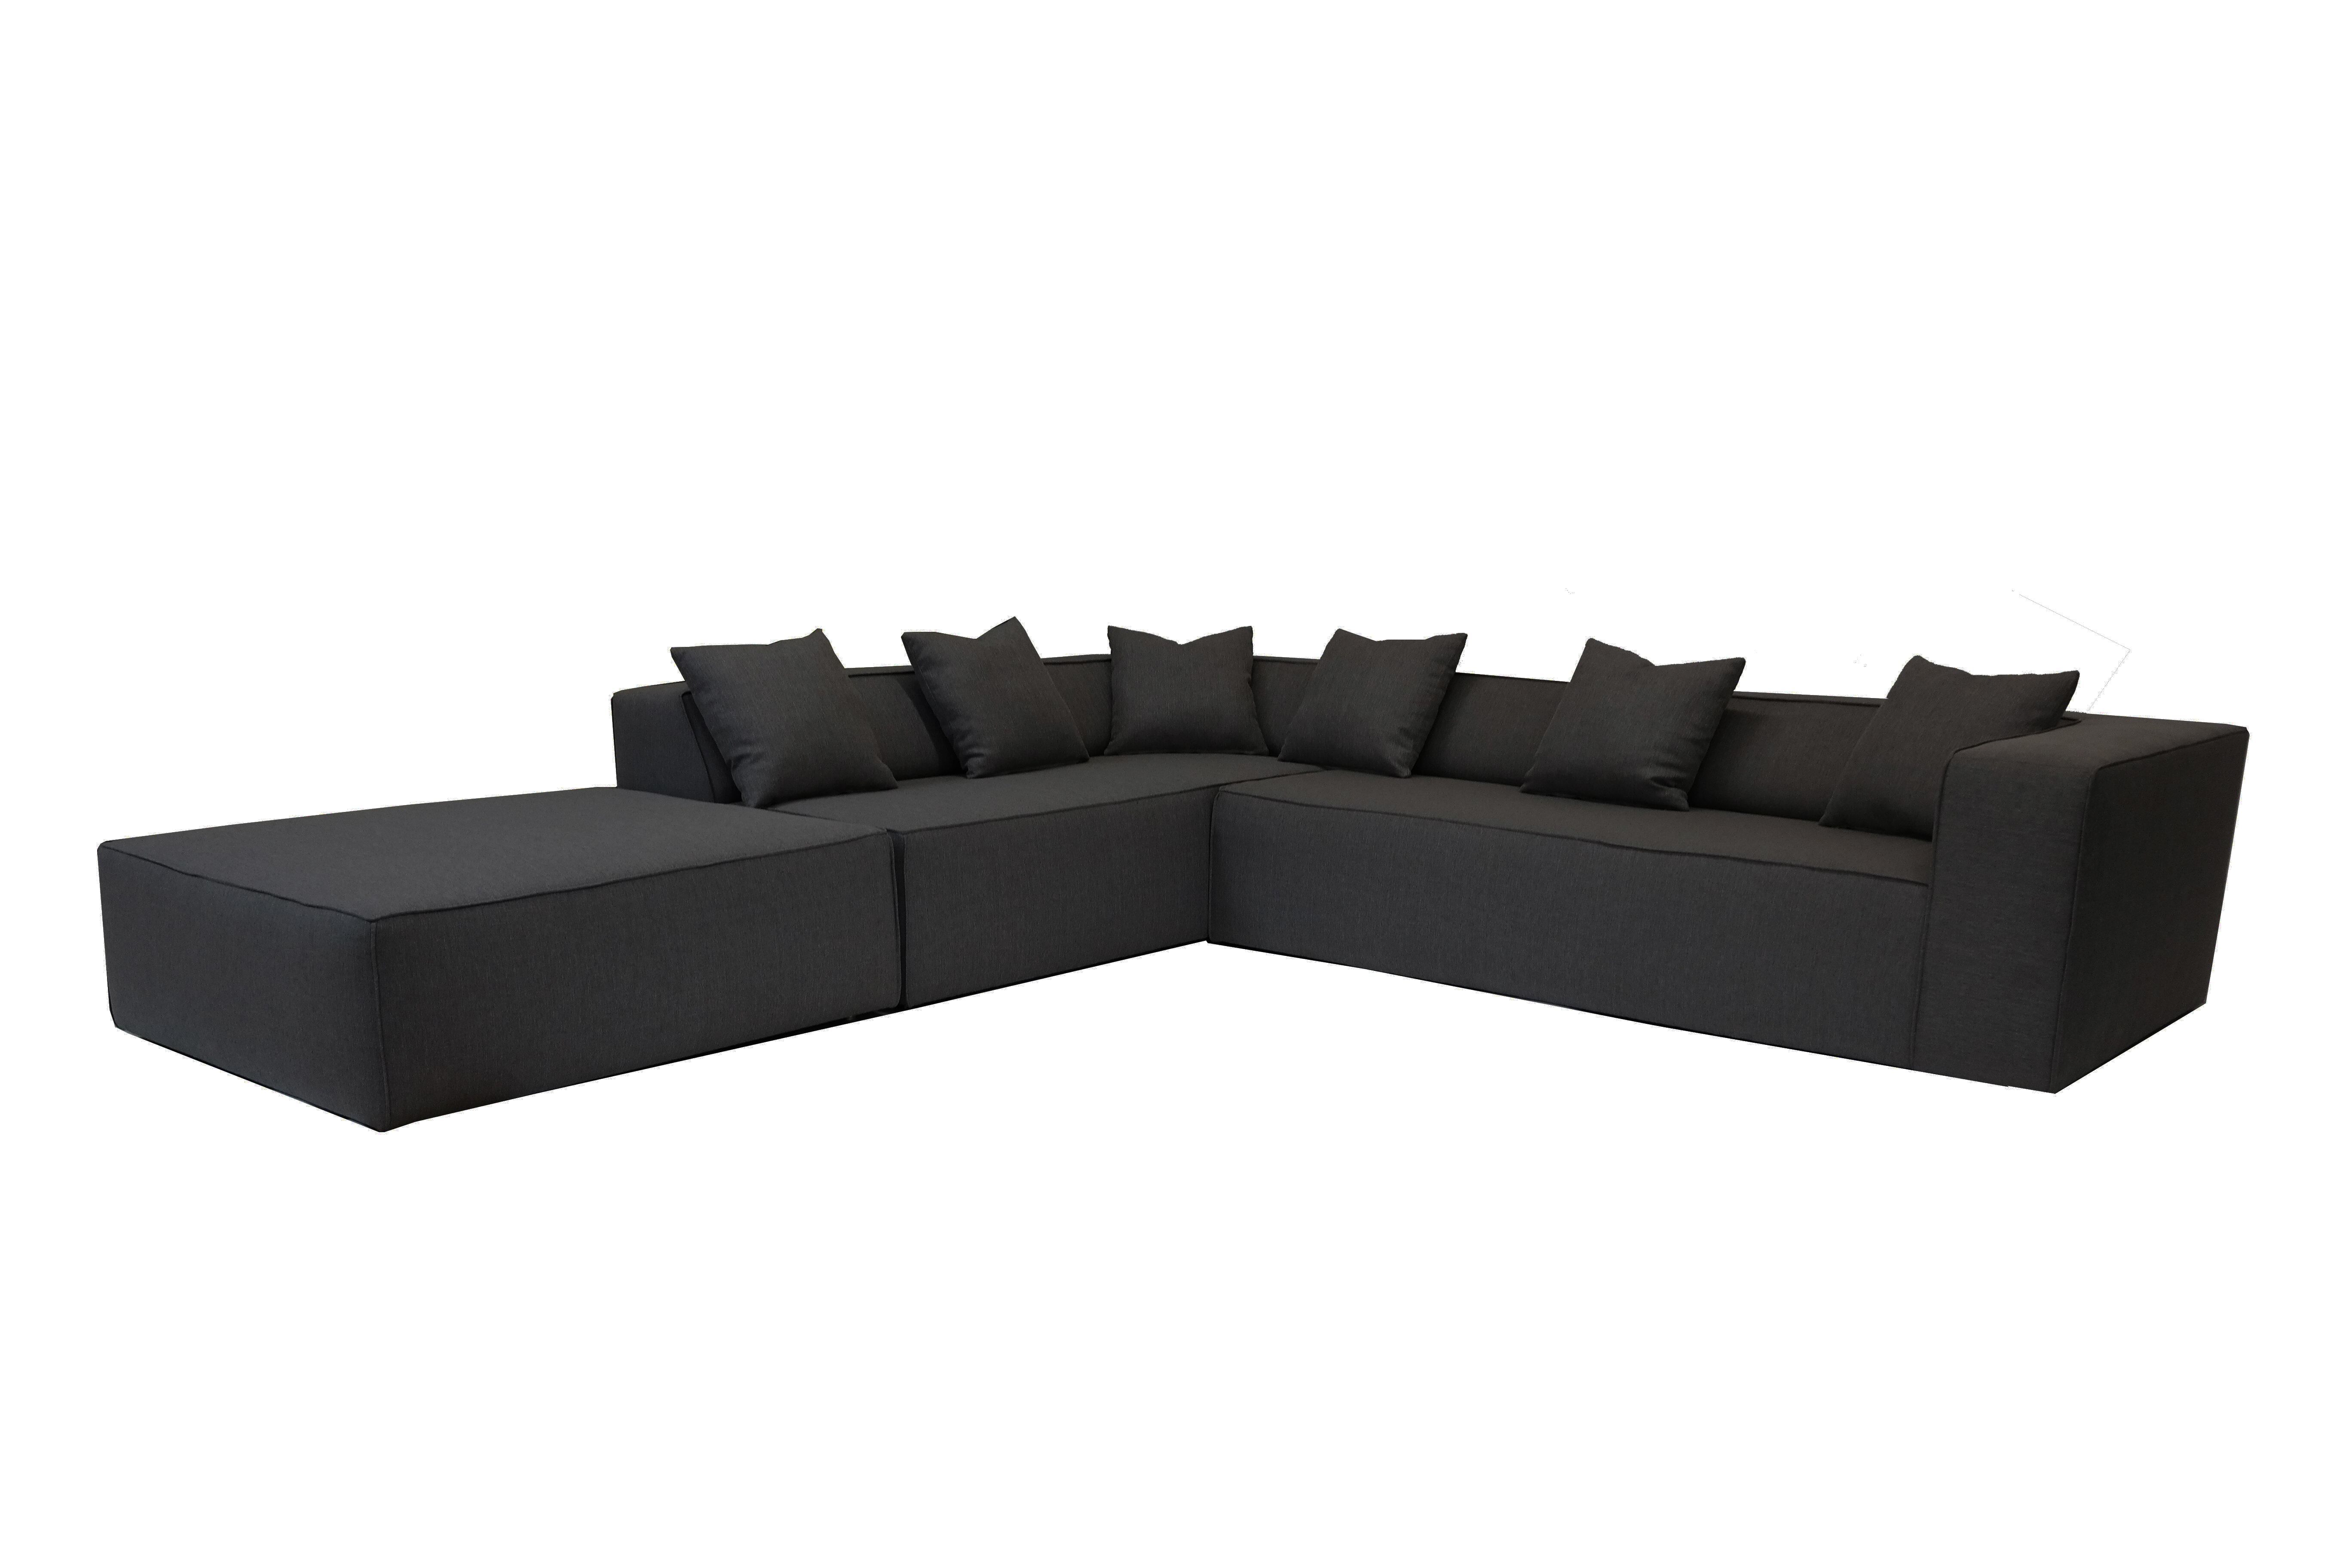 Groovy Box Sectional With Ottoman Beatyapartments Chair Design Images Beatyapartmentscom